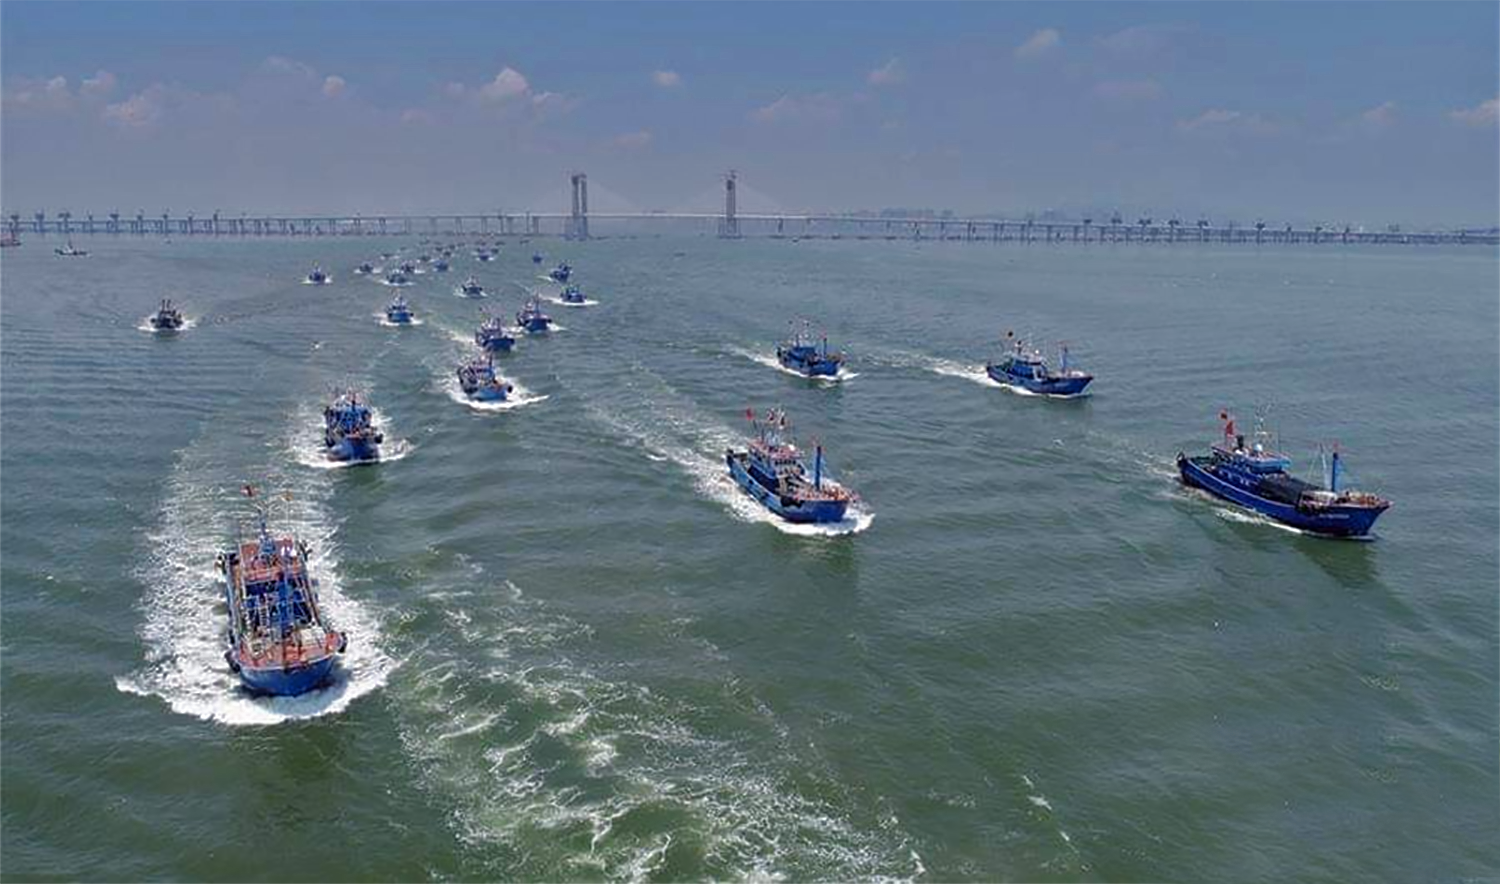 Pakistani fisherman fight the mighty Chinese for food in country's deep-sea fishing waters